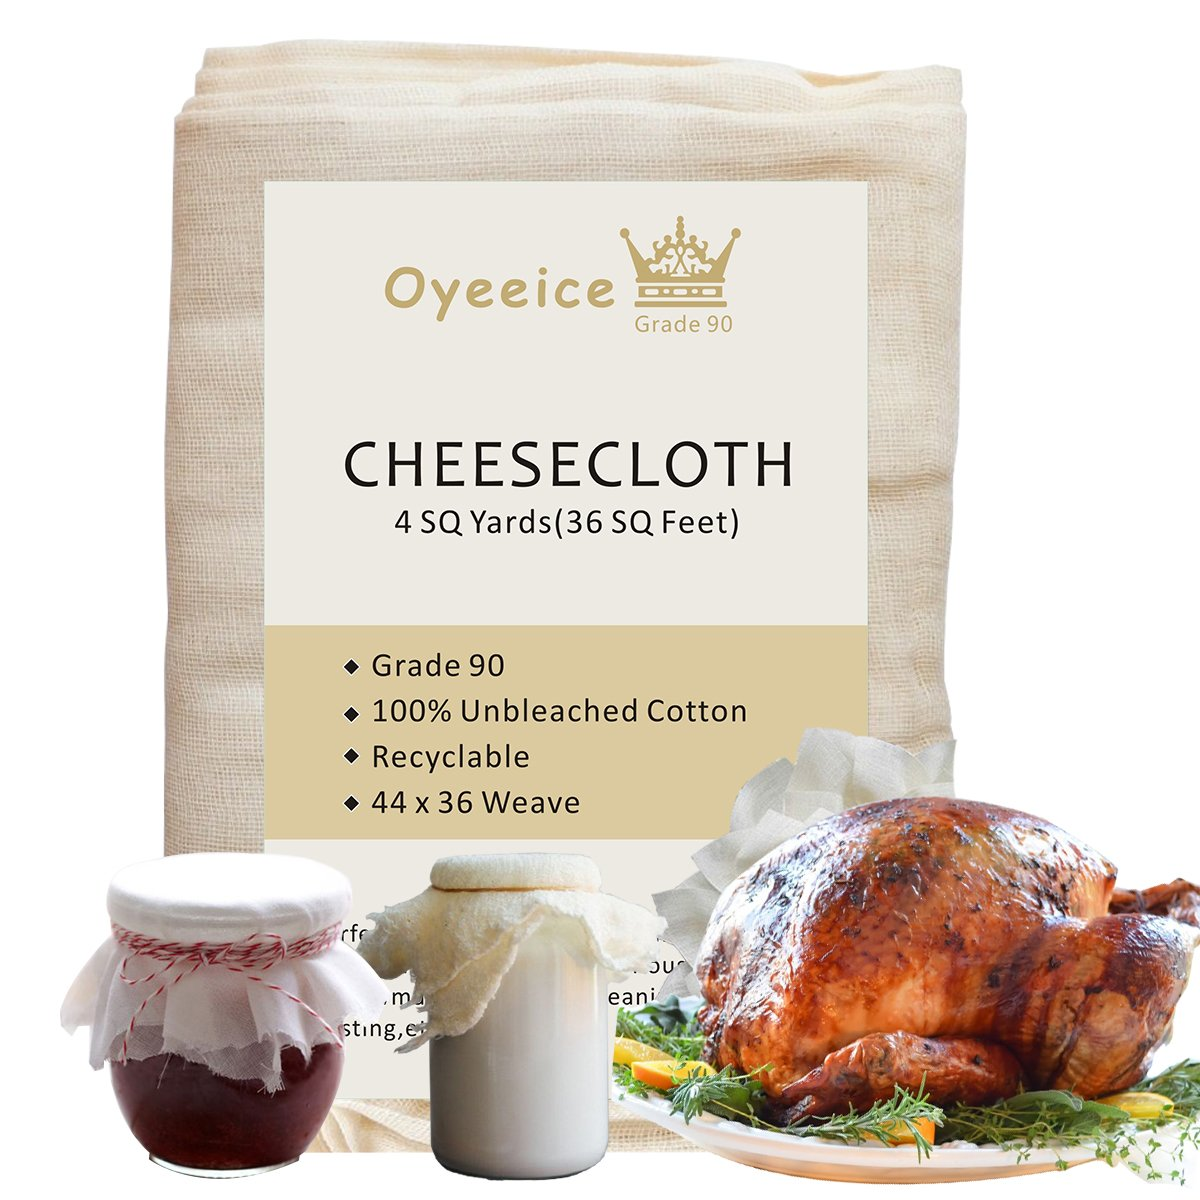 Oyeeice Reusable Cheesecloth,Unbleached Grade 90 Natural Cotton Cheesecloth for Making Cheese Yogurt Turkey(4 Yards/36 Sq.Feet)